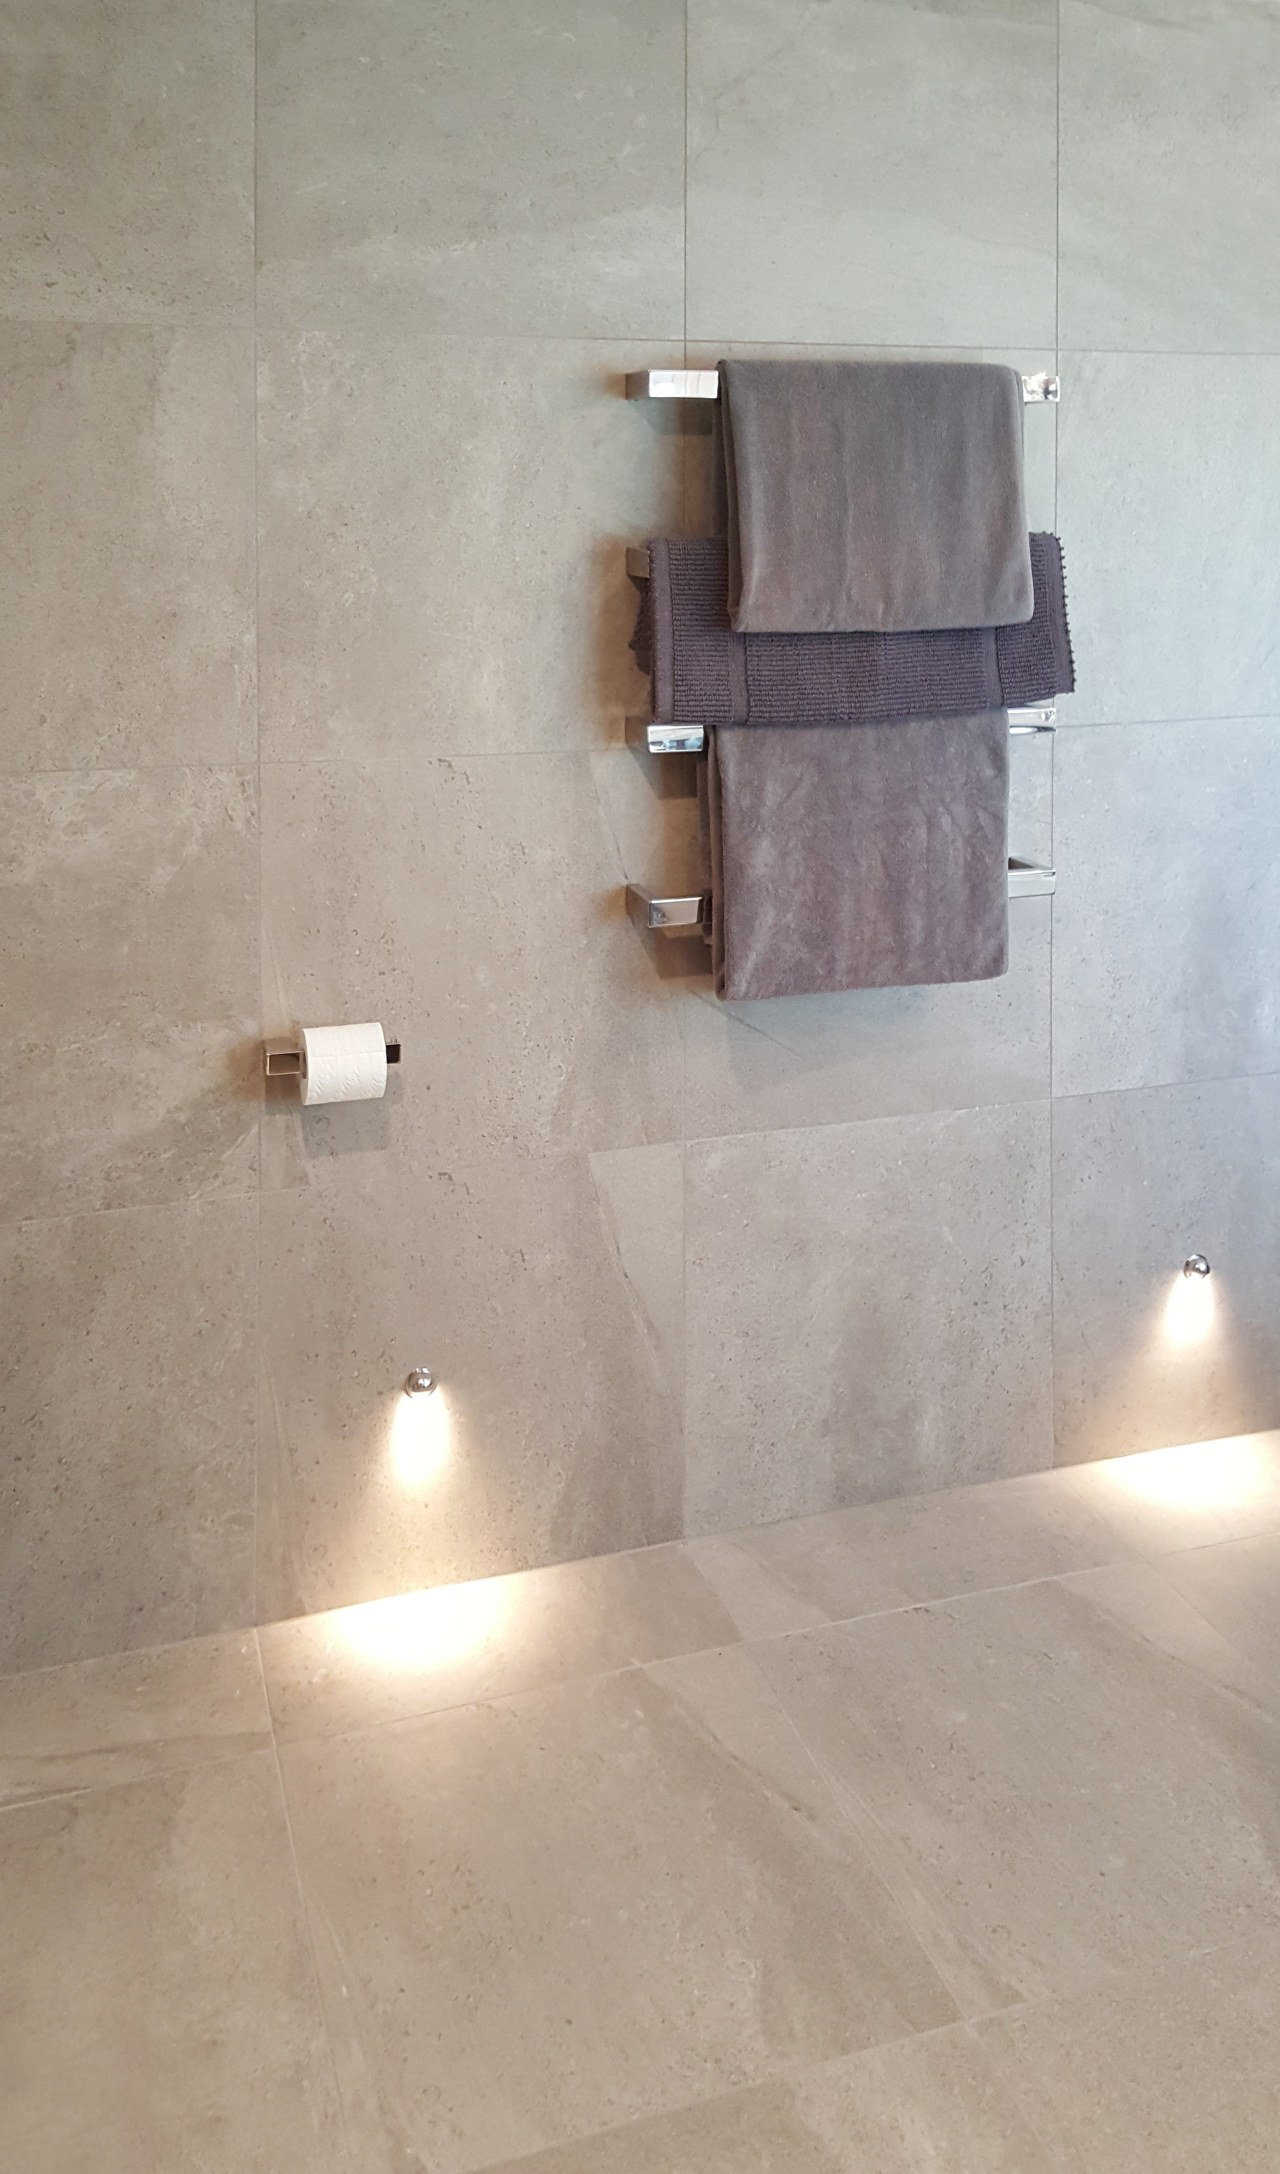 Features of this bathroom include individual DC Short floor, flooring, lighting, plumbing fixture, tap, tile, wall, gray